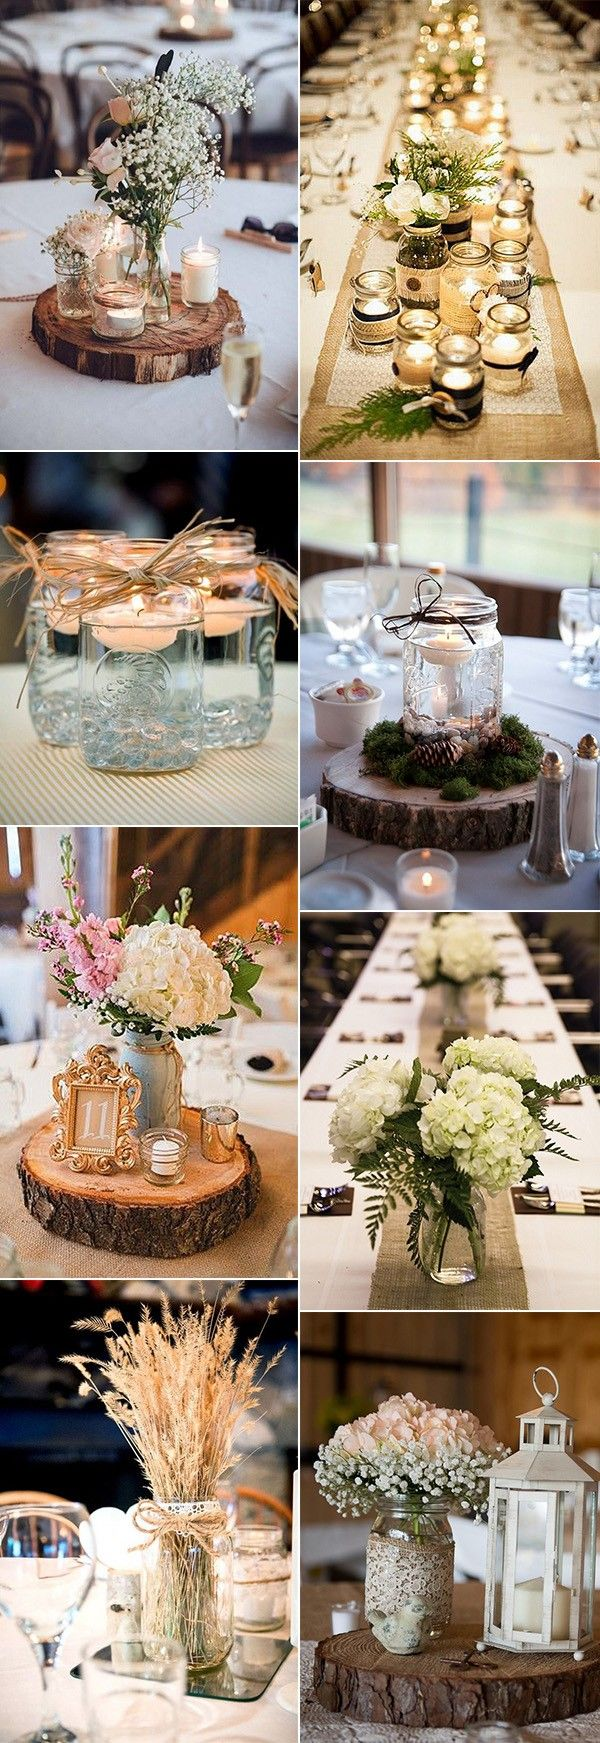 Mason jar wedding decoration ideas   Gorgeous Mason Jars Wedding Centerpiece Ideas for Your Big Day